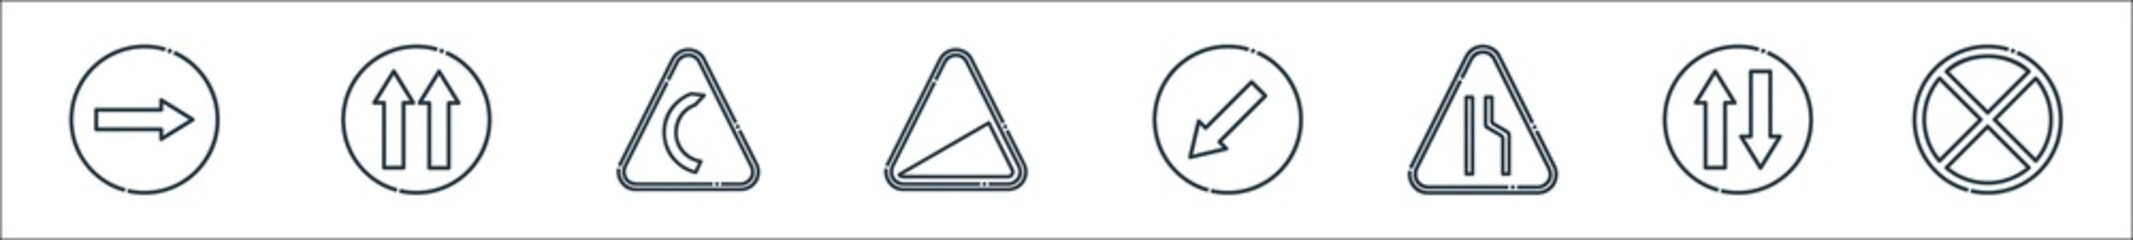 signaling line icons. linear set. quality vector line set such as no stopping, two way, narrow road, keep left, slope, right bend, one way. Wall mural